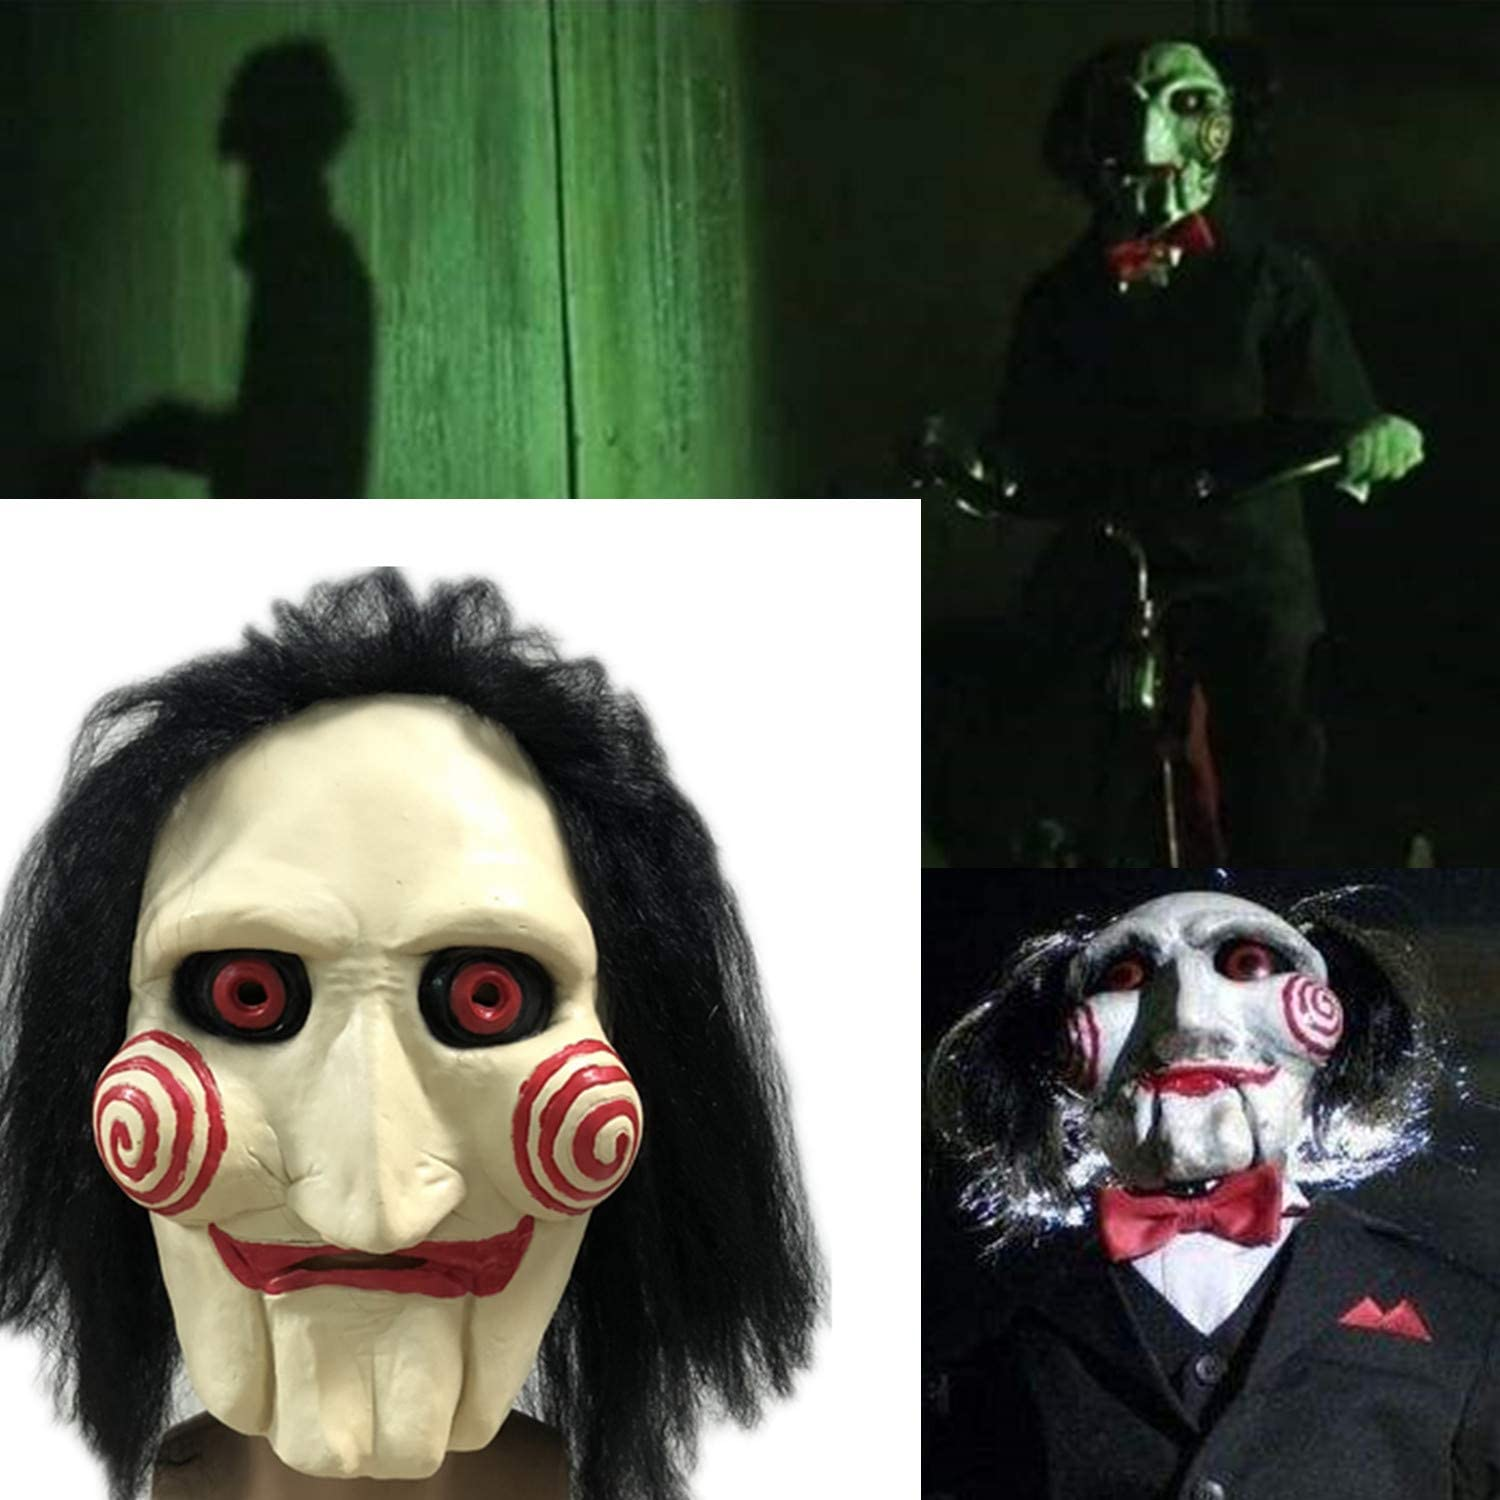 The Puppet Mask,Saw Cosplay Jigsaw Dress Up Mask Costume,Halloween Latex Scary Mask with Hair